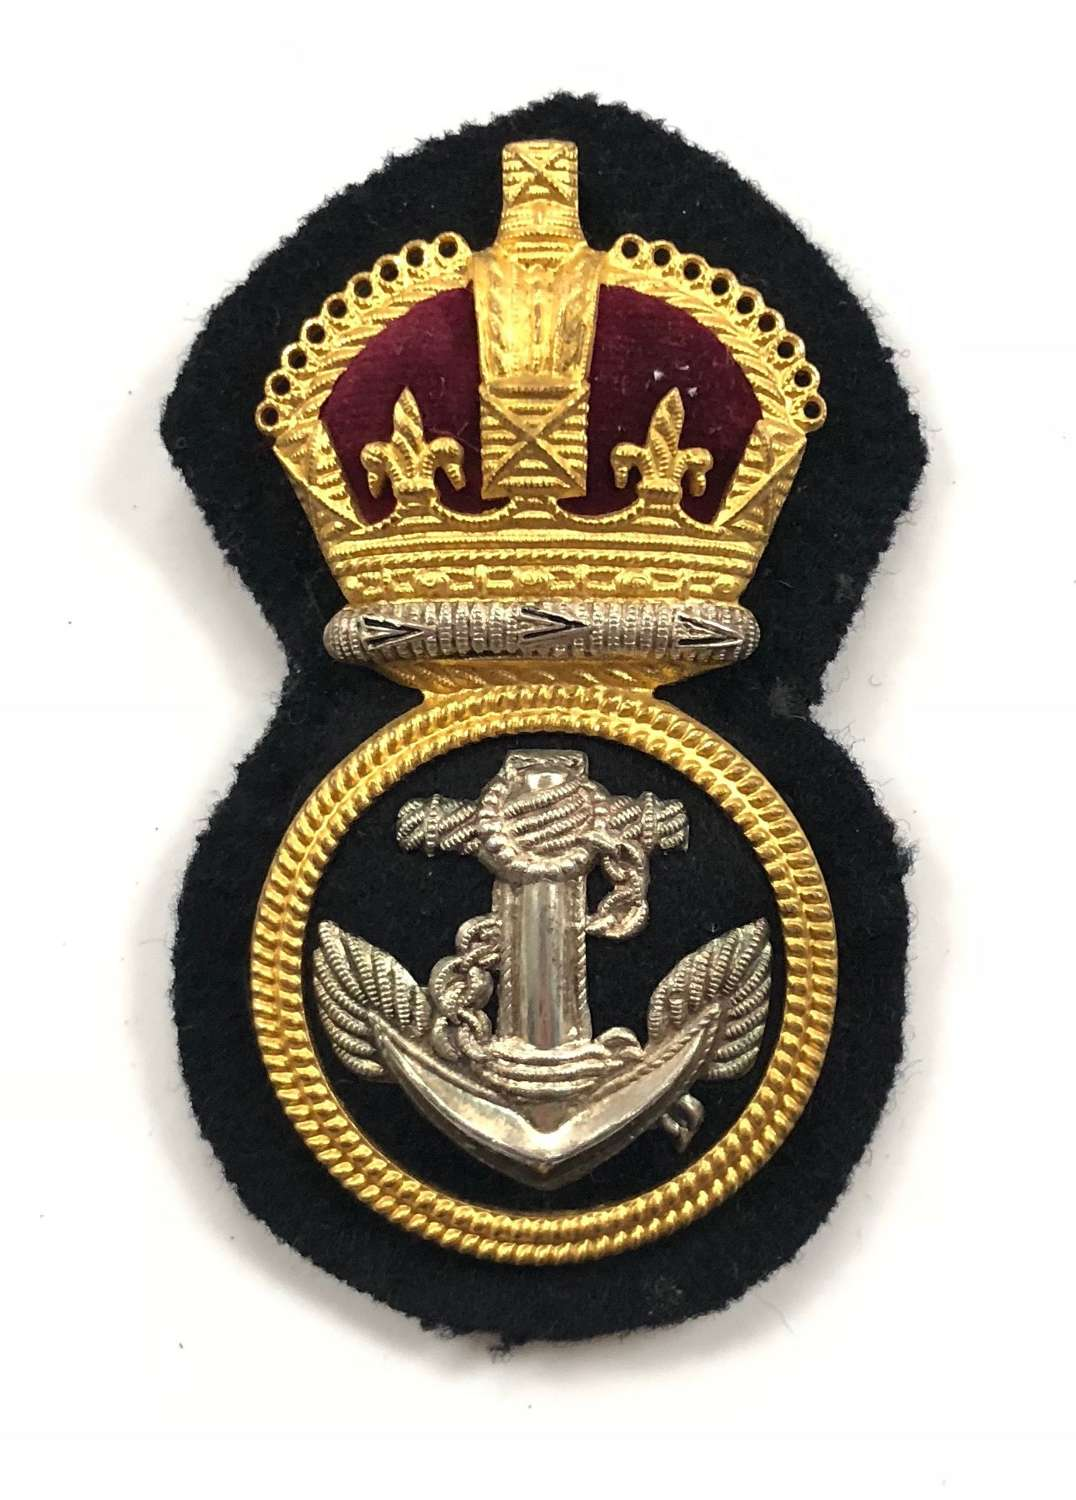 WW2 Royal Navy Petty Officer's Economy Pattern Cap Badge.